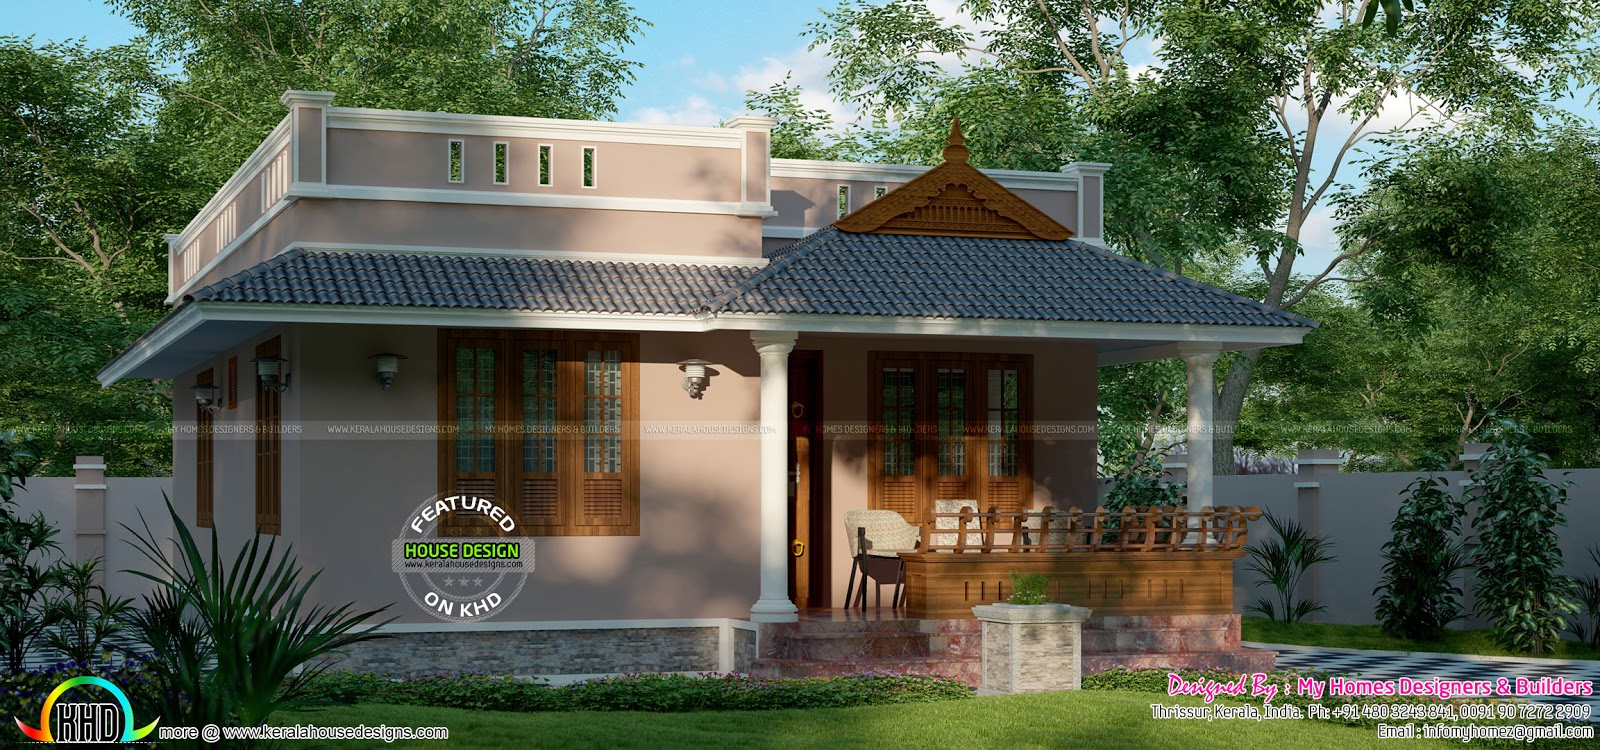 12 lakhs budget kerala home design kerala home design for In home designs